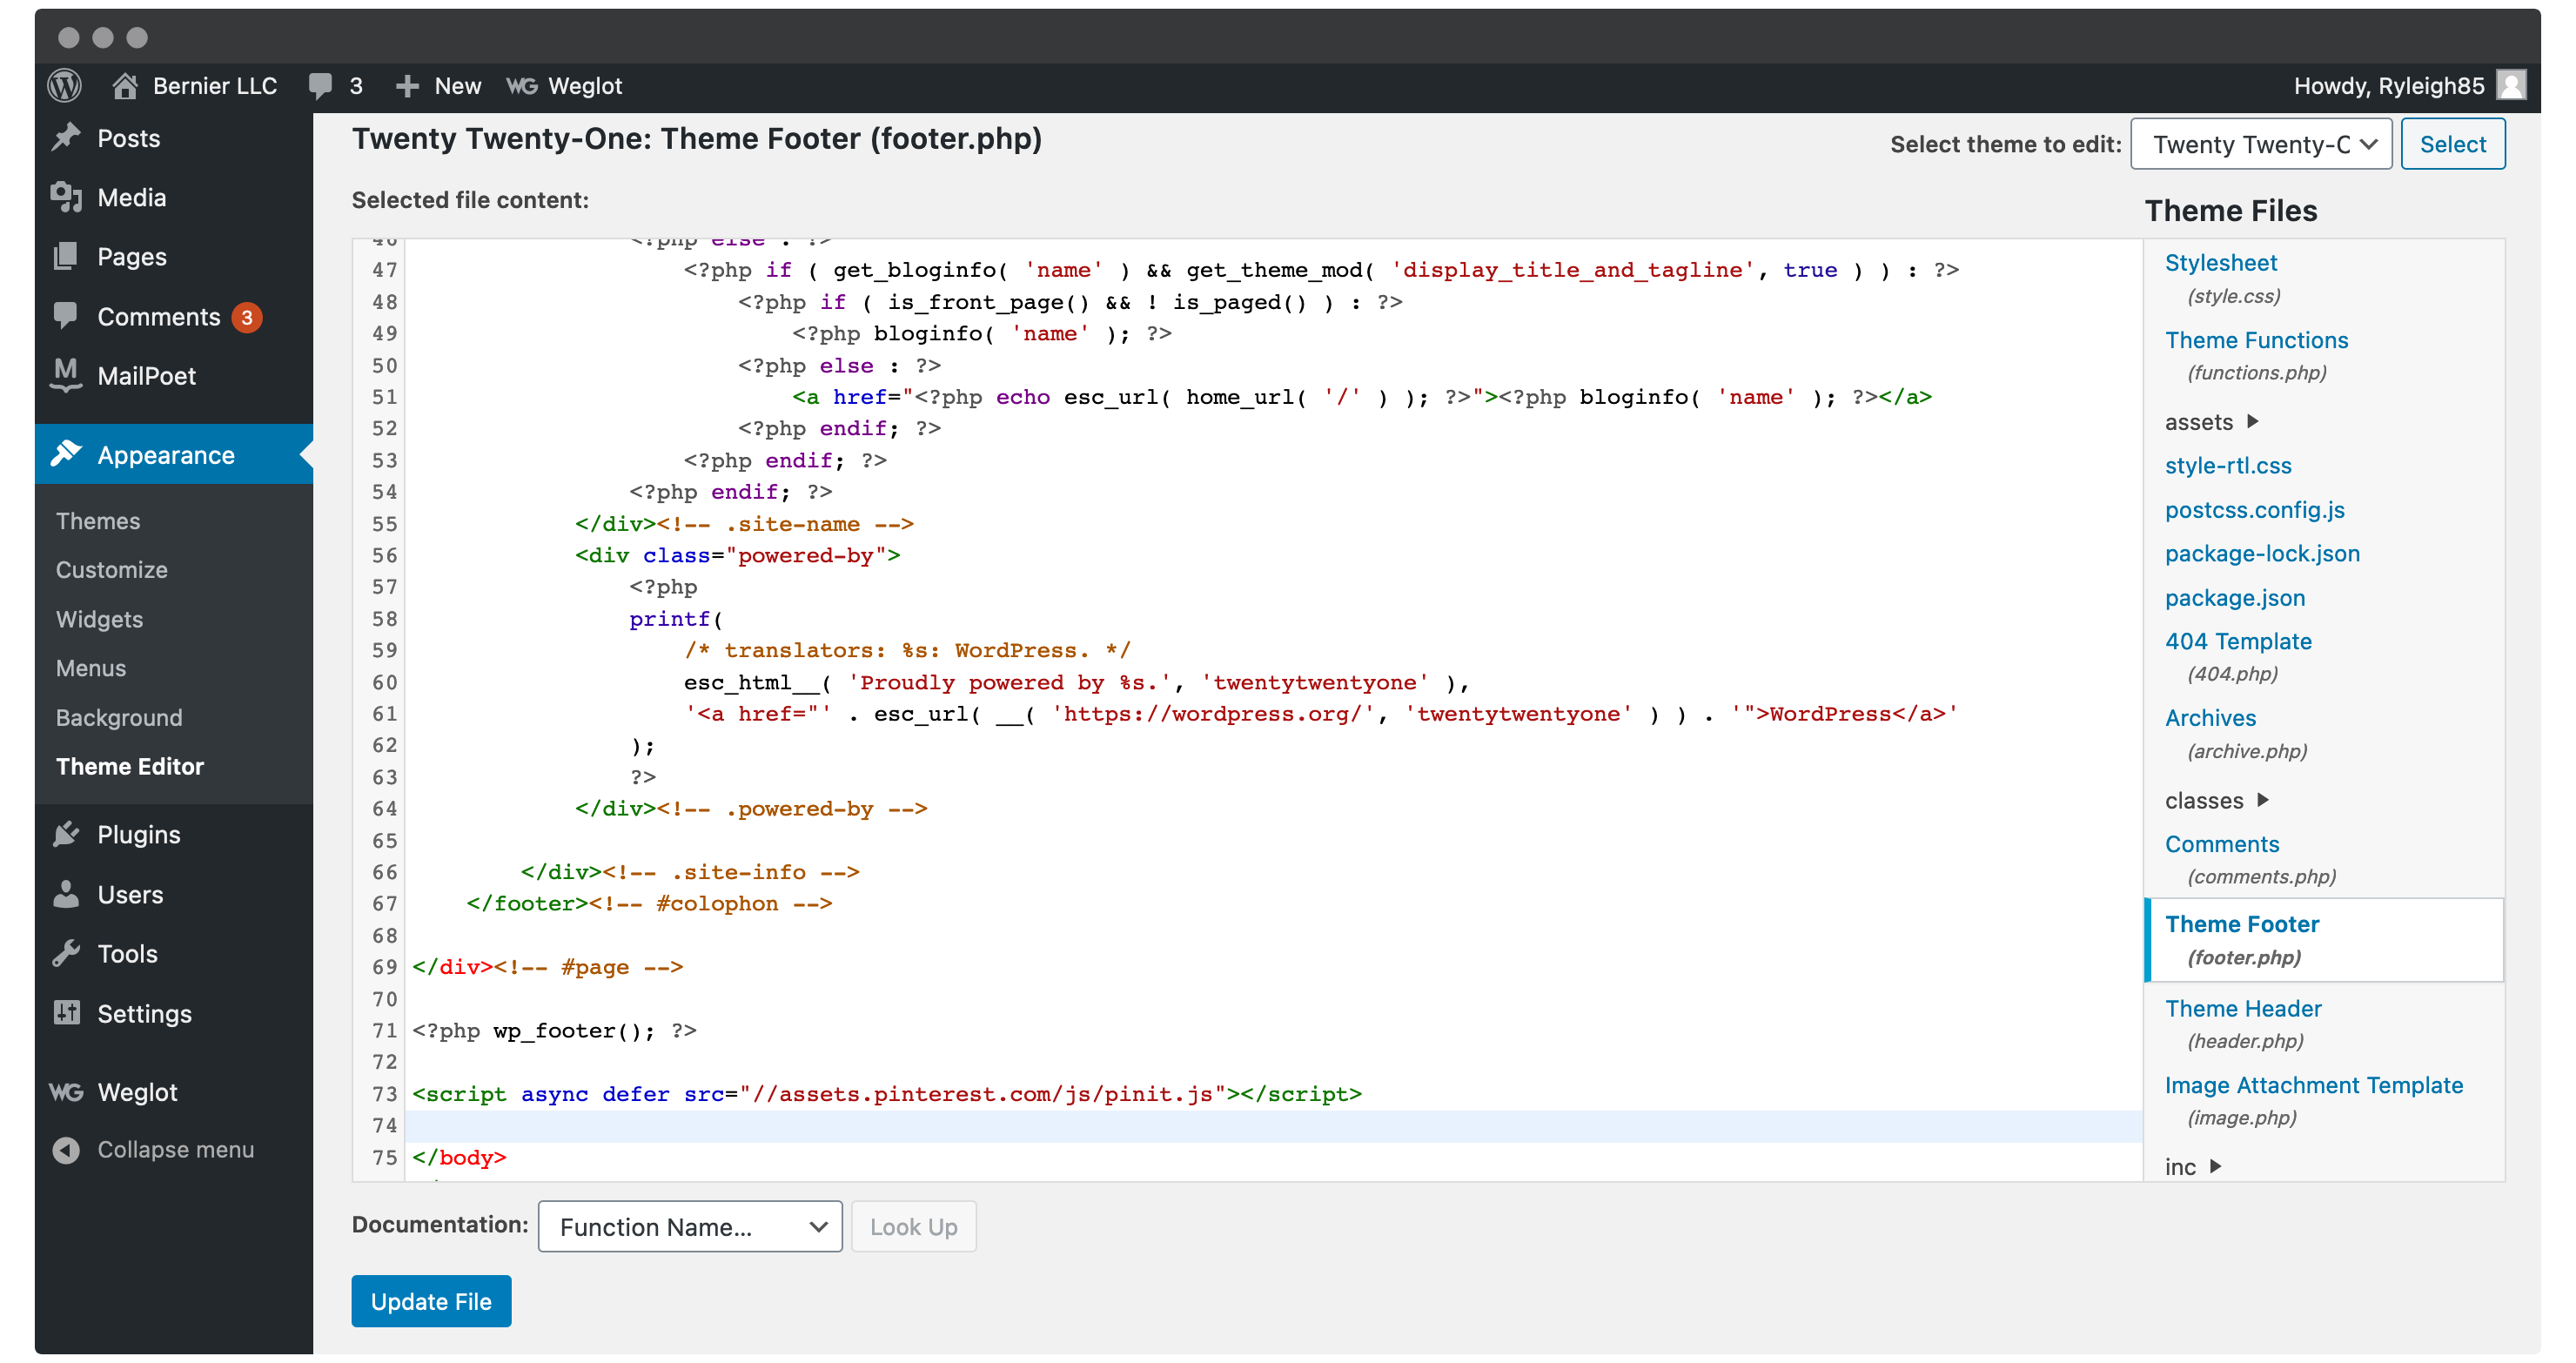 Adding code to the Theme Footer file within WordPress.